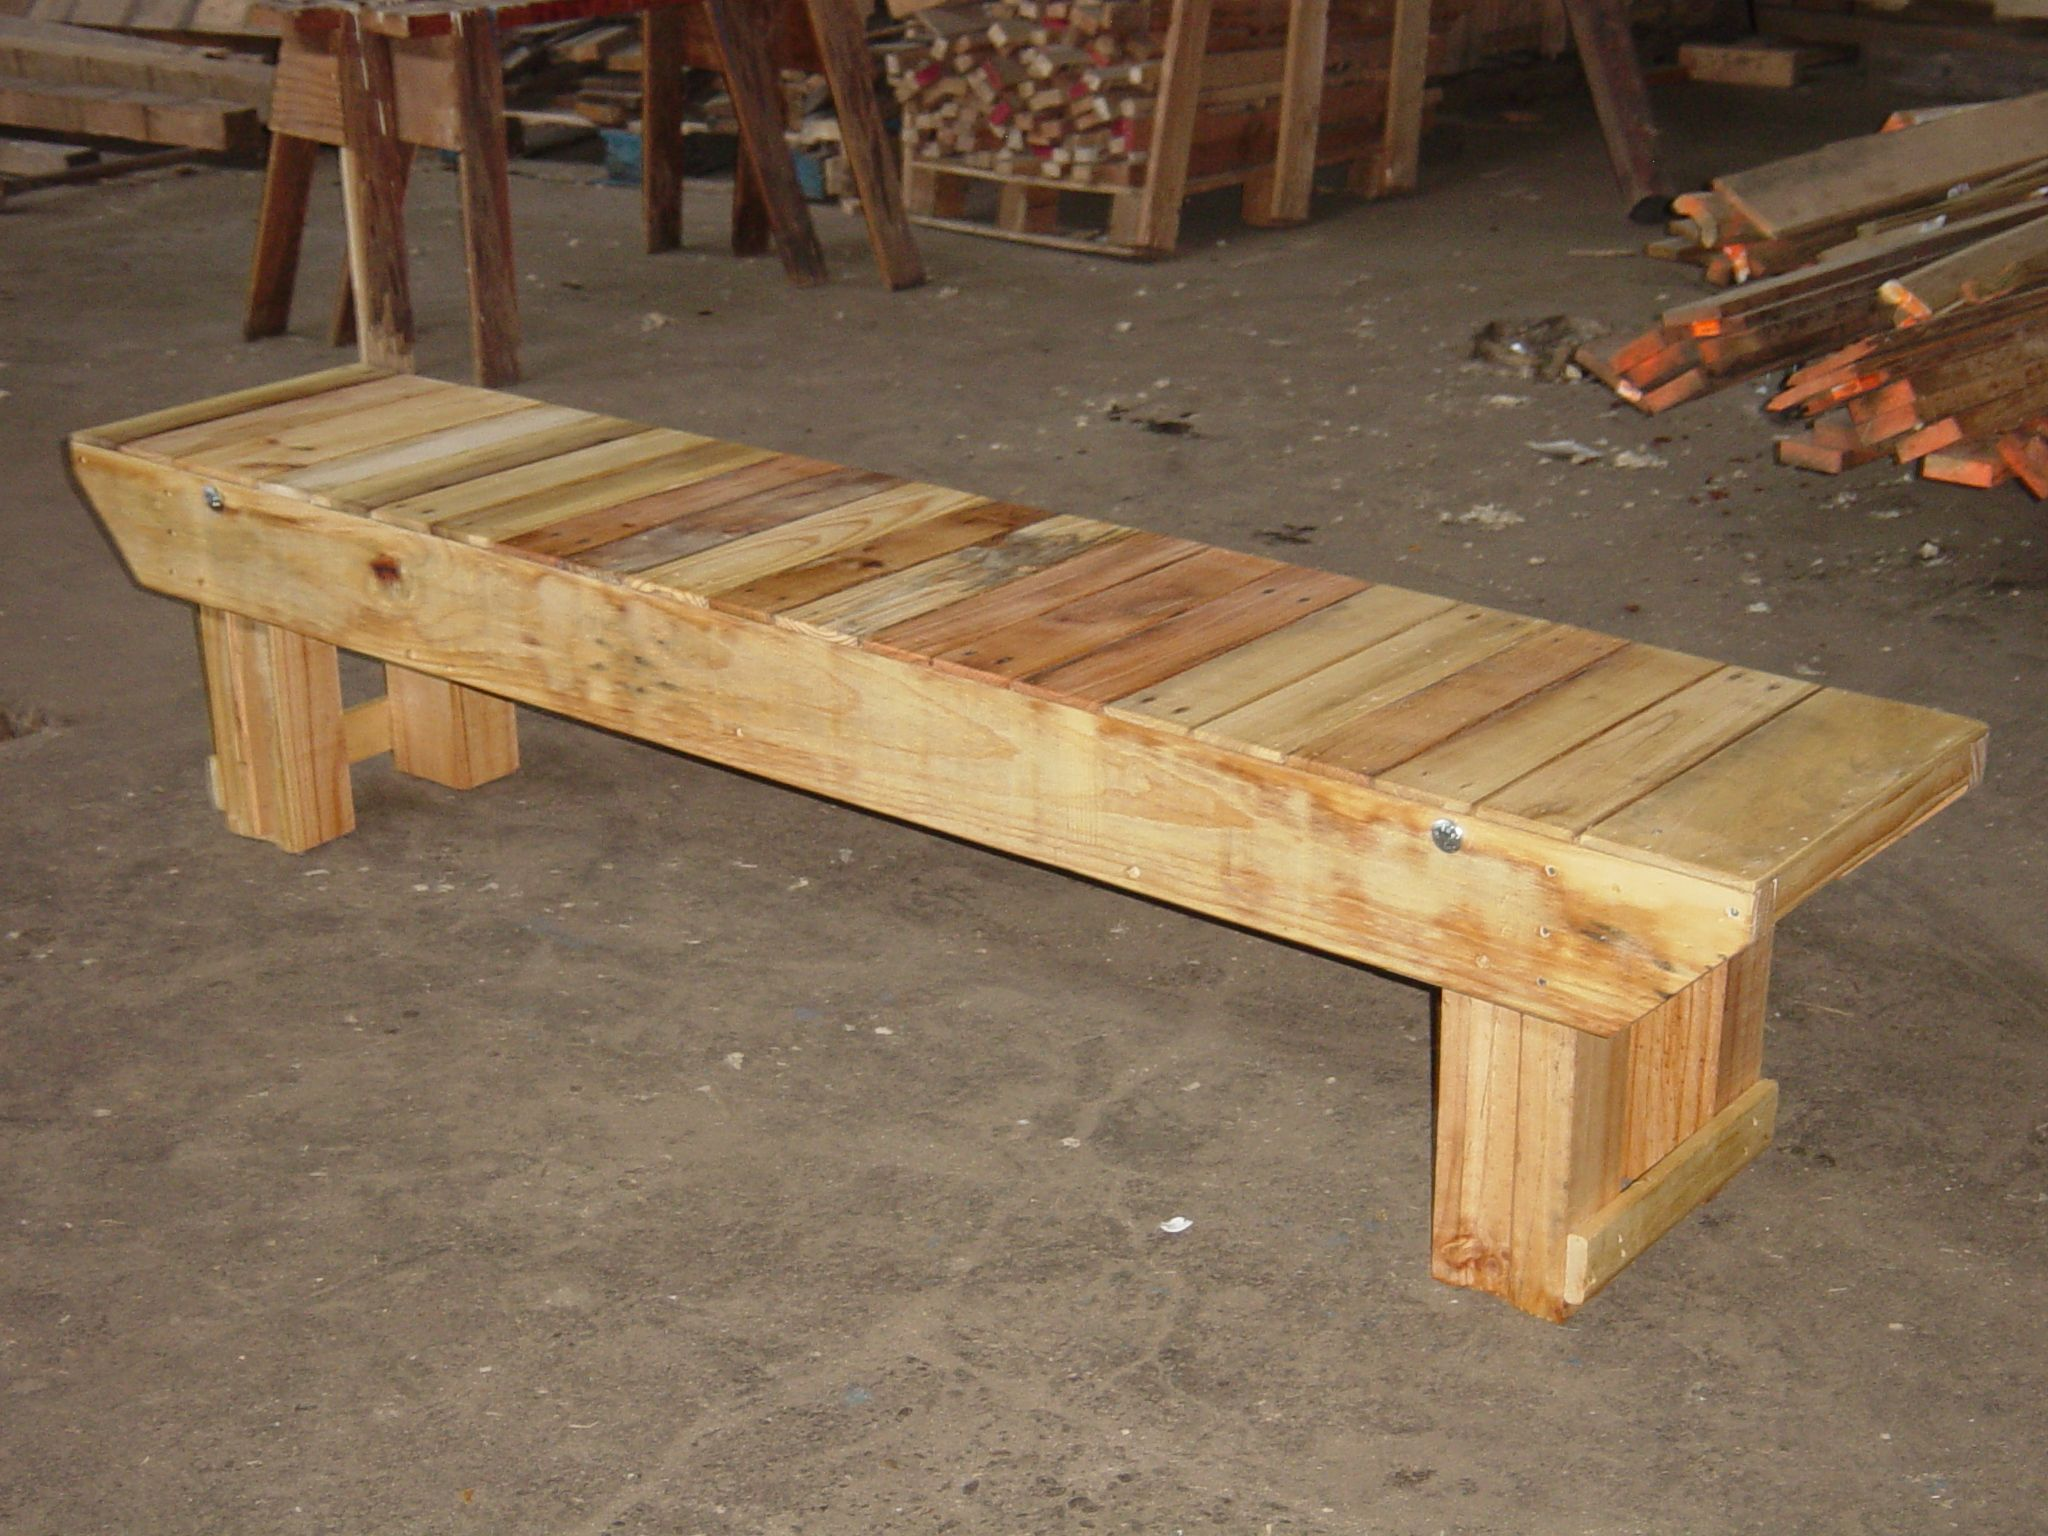 Log bench home made a rustic - Rustic Wood Country Benches For Sale Or Rent Phila Pa 215 843